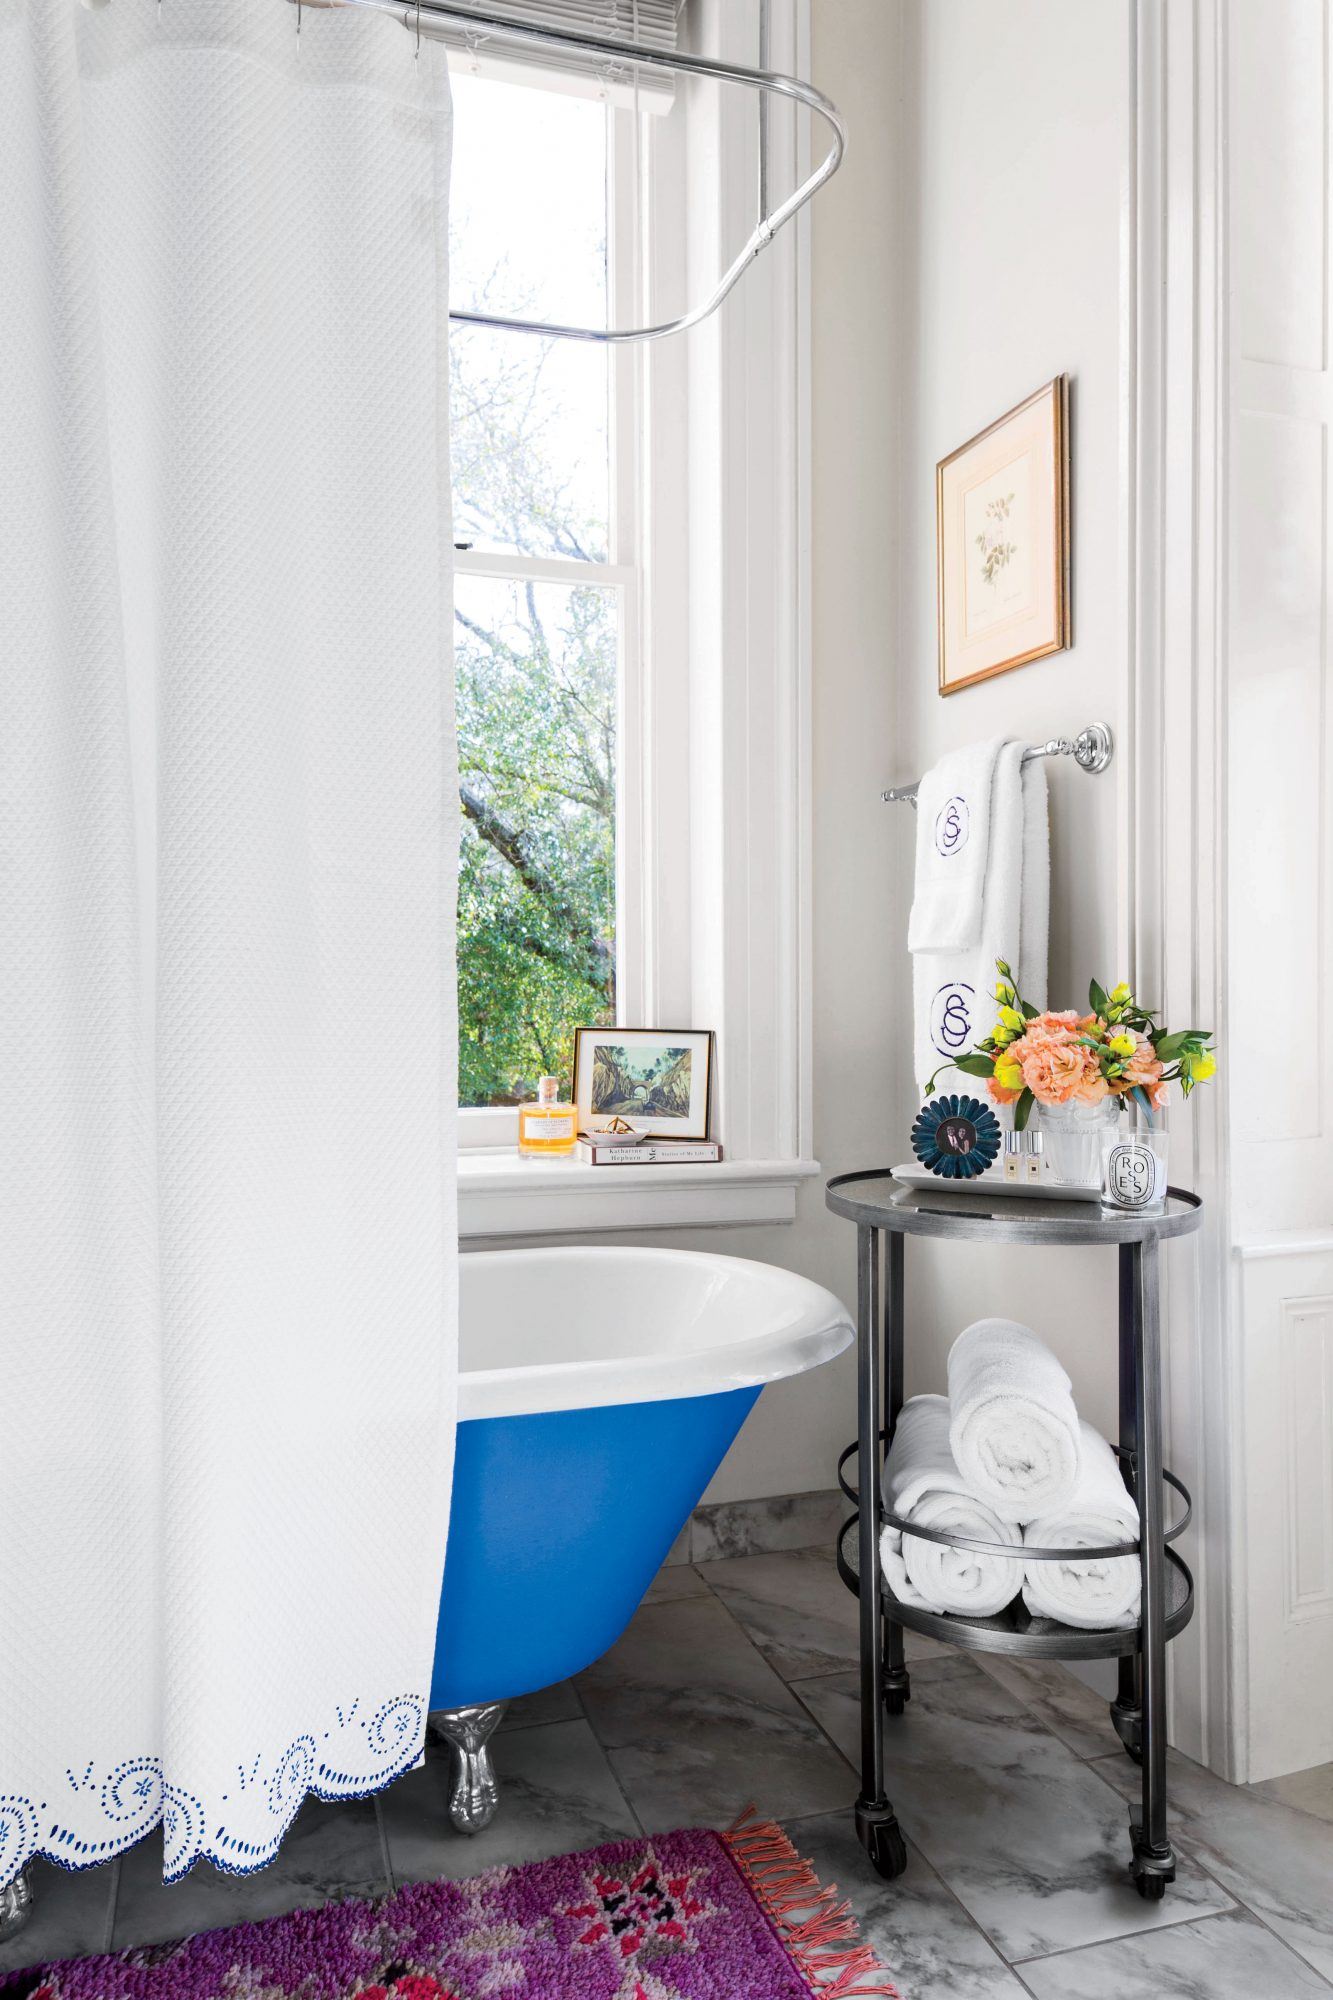 White bathroom with blue clawfoot tub and white shower curtain